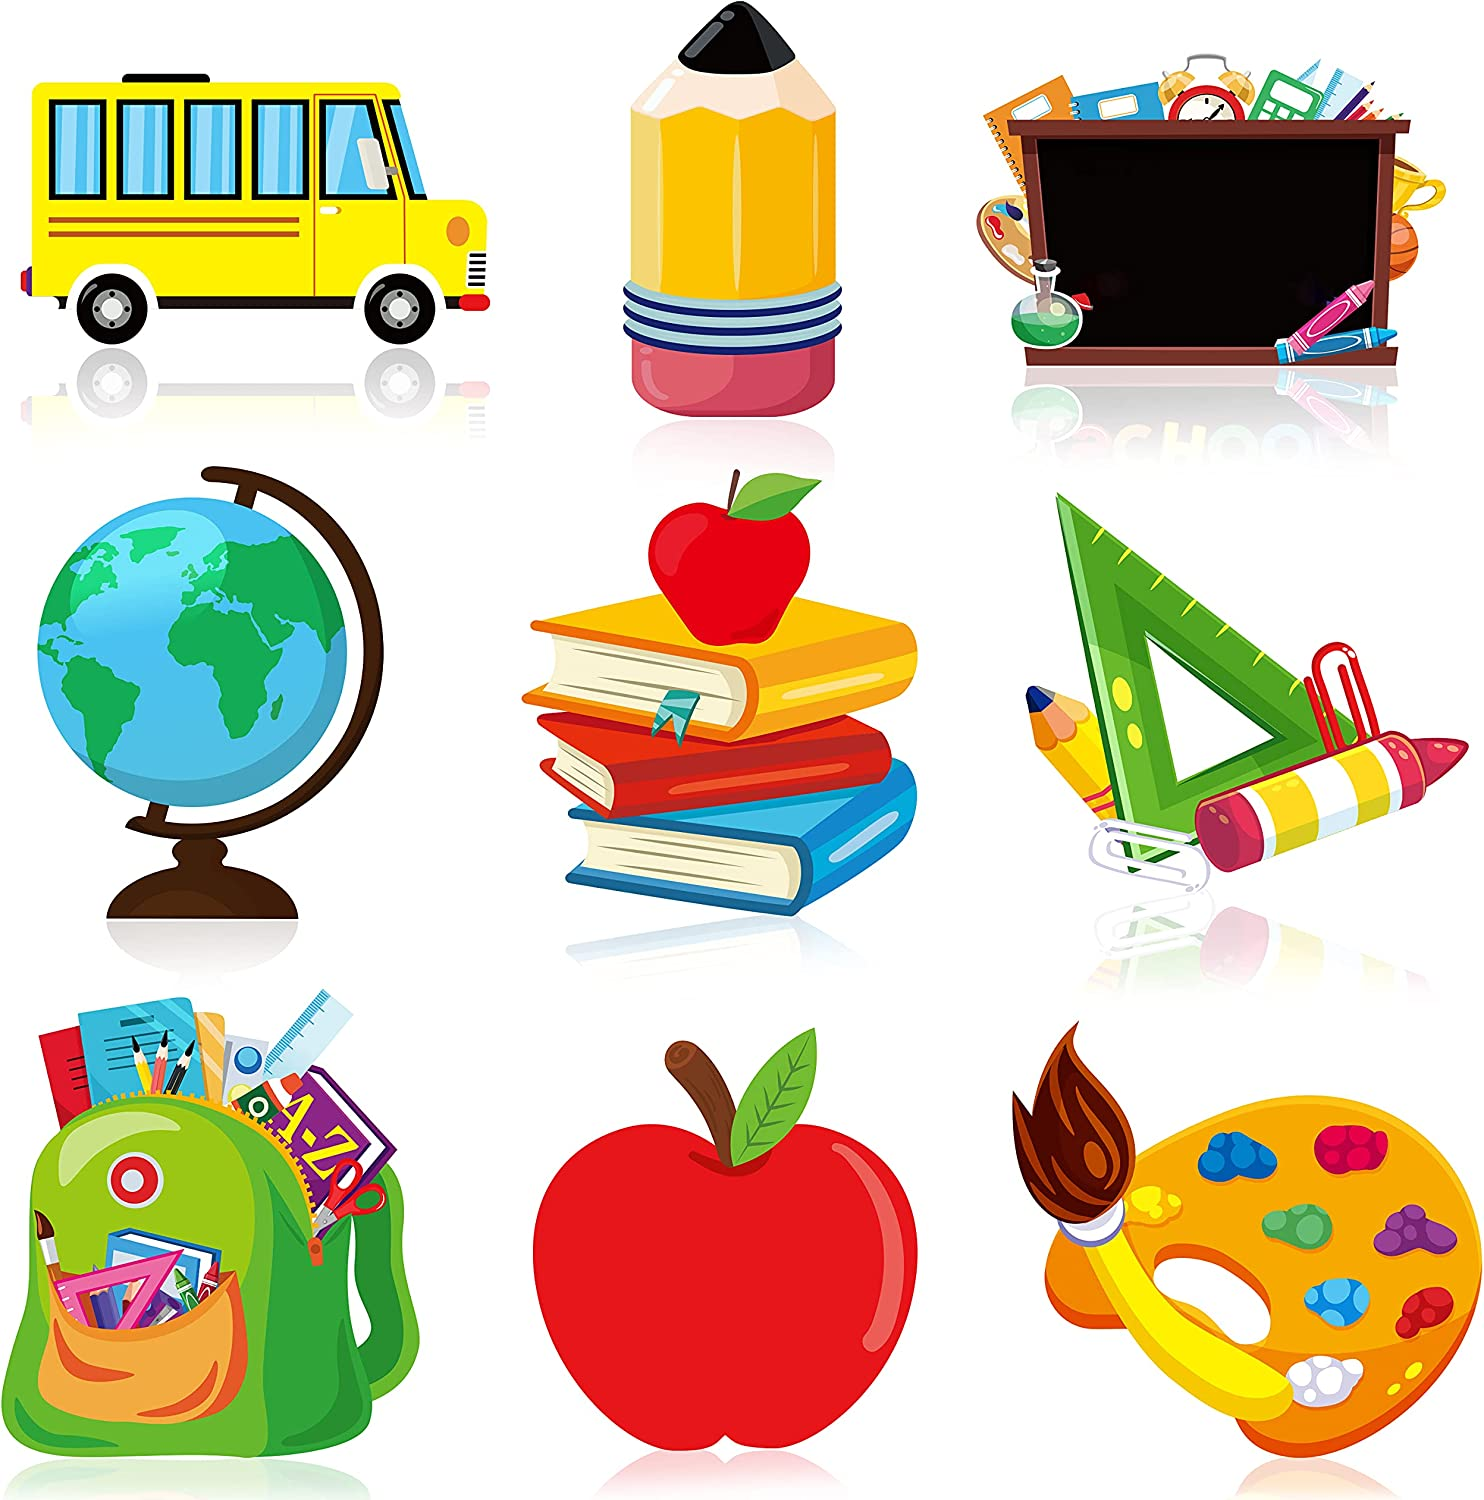 WATINC 45PCS Back To School Cut-Outs Decoration, School Bus for First Day of Classroom Theme Essentials Wall Decal Bulletin for Colorful Book Chalkboard Decor for Kids and Teacher Party Favor Supplies